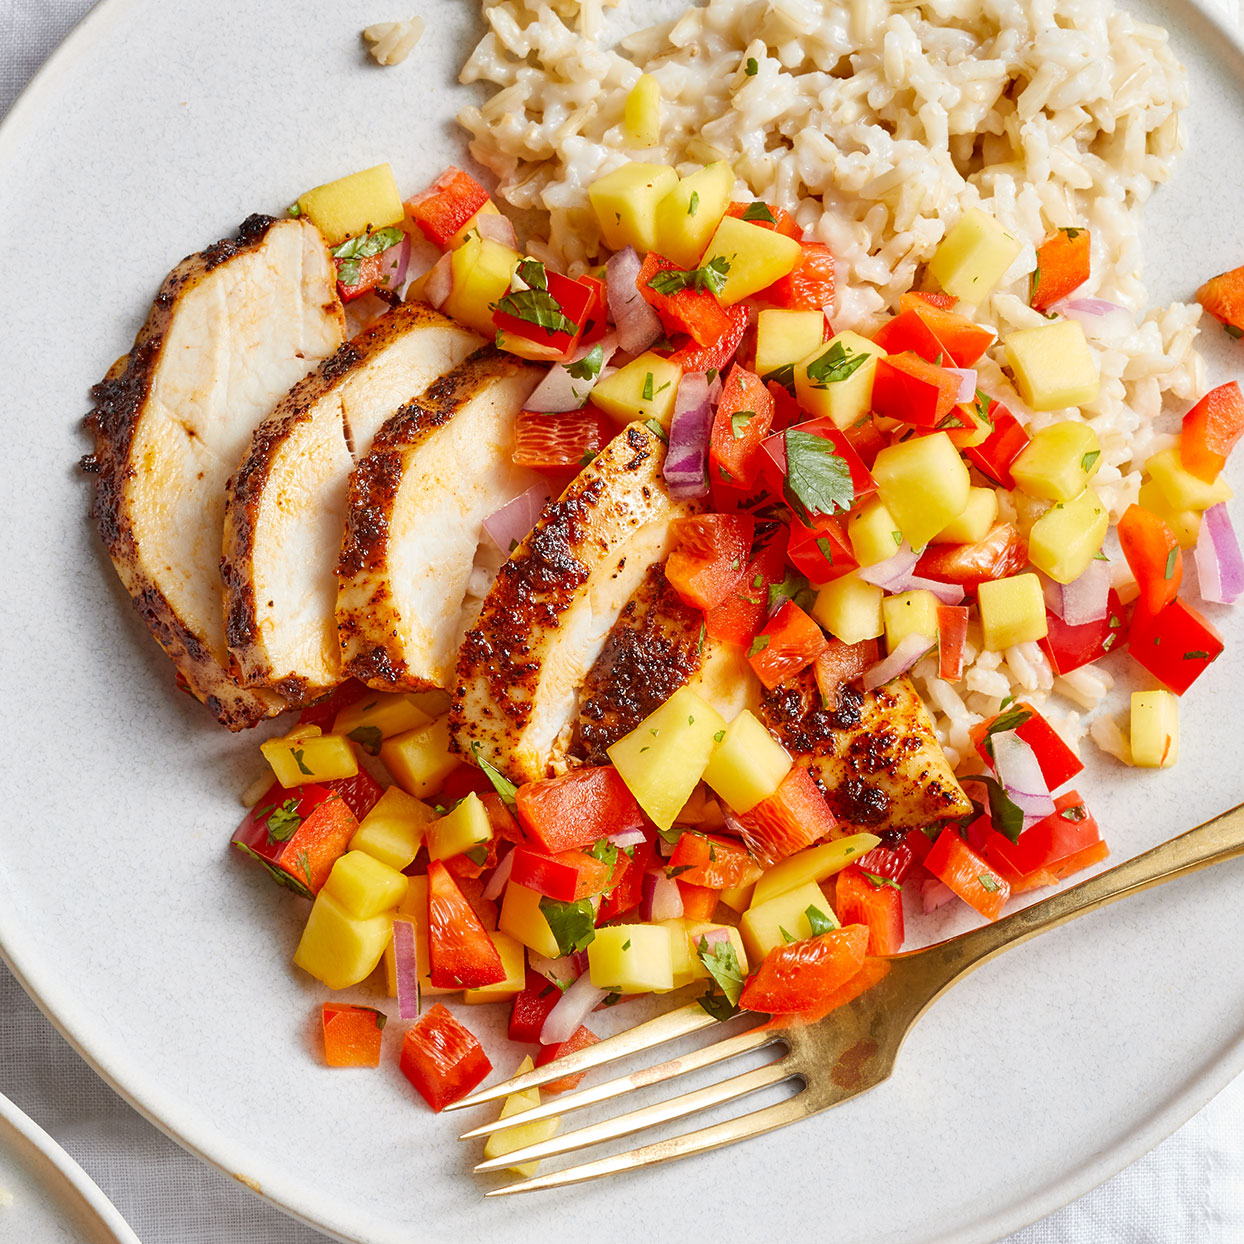 Chili-Rubbed Chicken with Coconut Rice & Mango Salsa